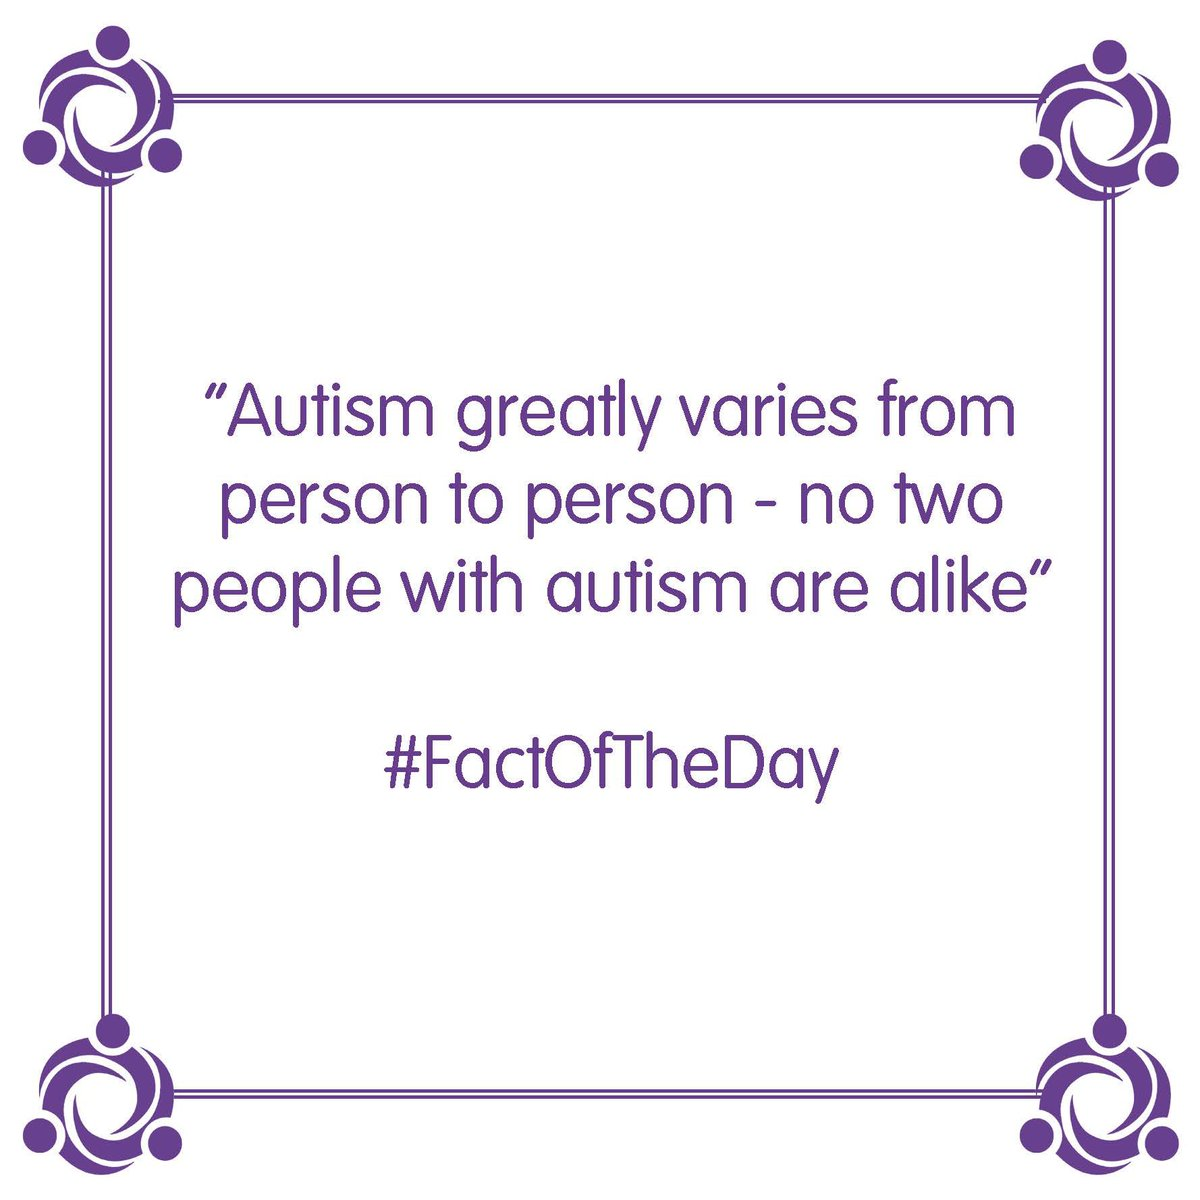 Fact Of The Day! #1stophealthcare #1team #fact #AutismAwareness #healthcare #care #support #jobs #permanent #humpday #wednesdaypic.twitter.com/j2lSQ3dccw